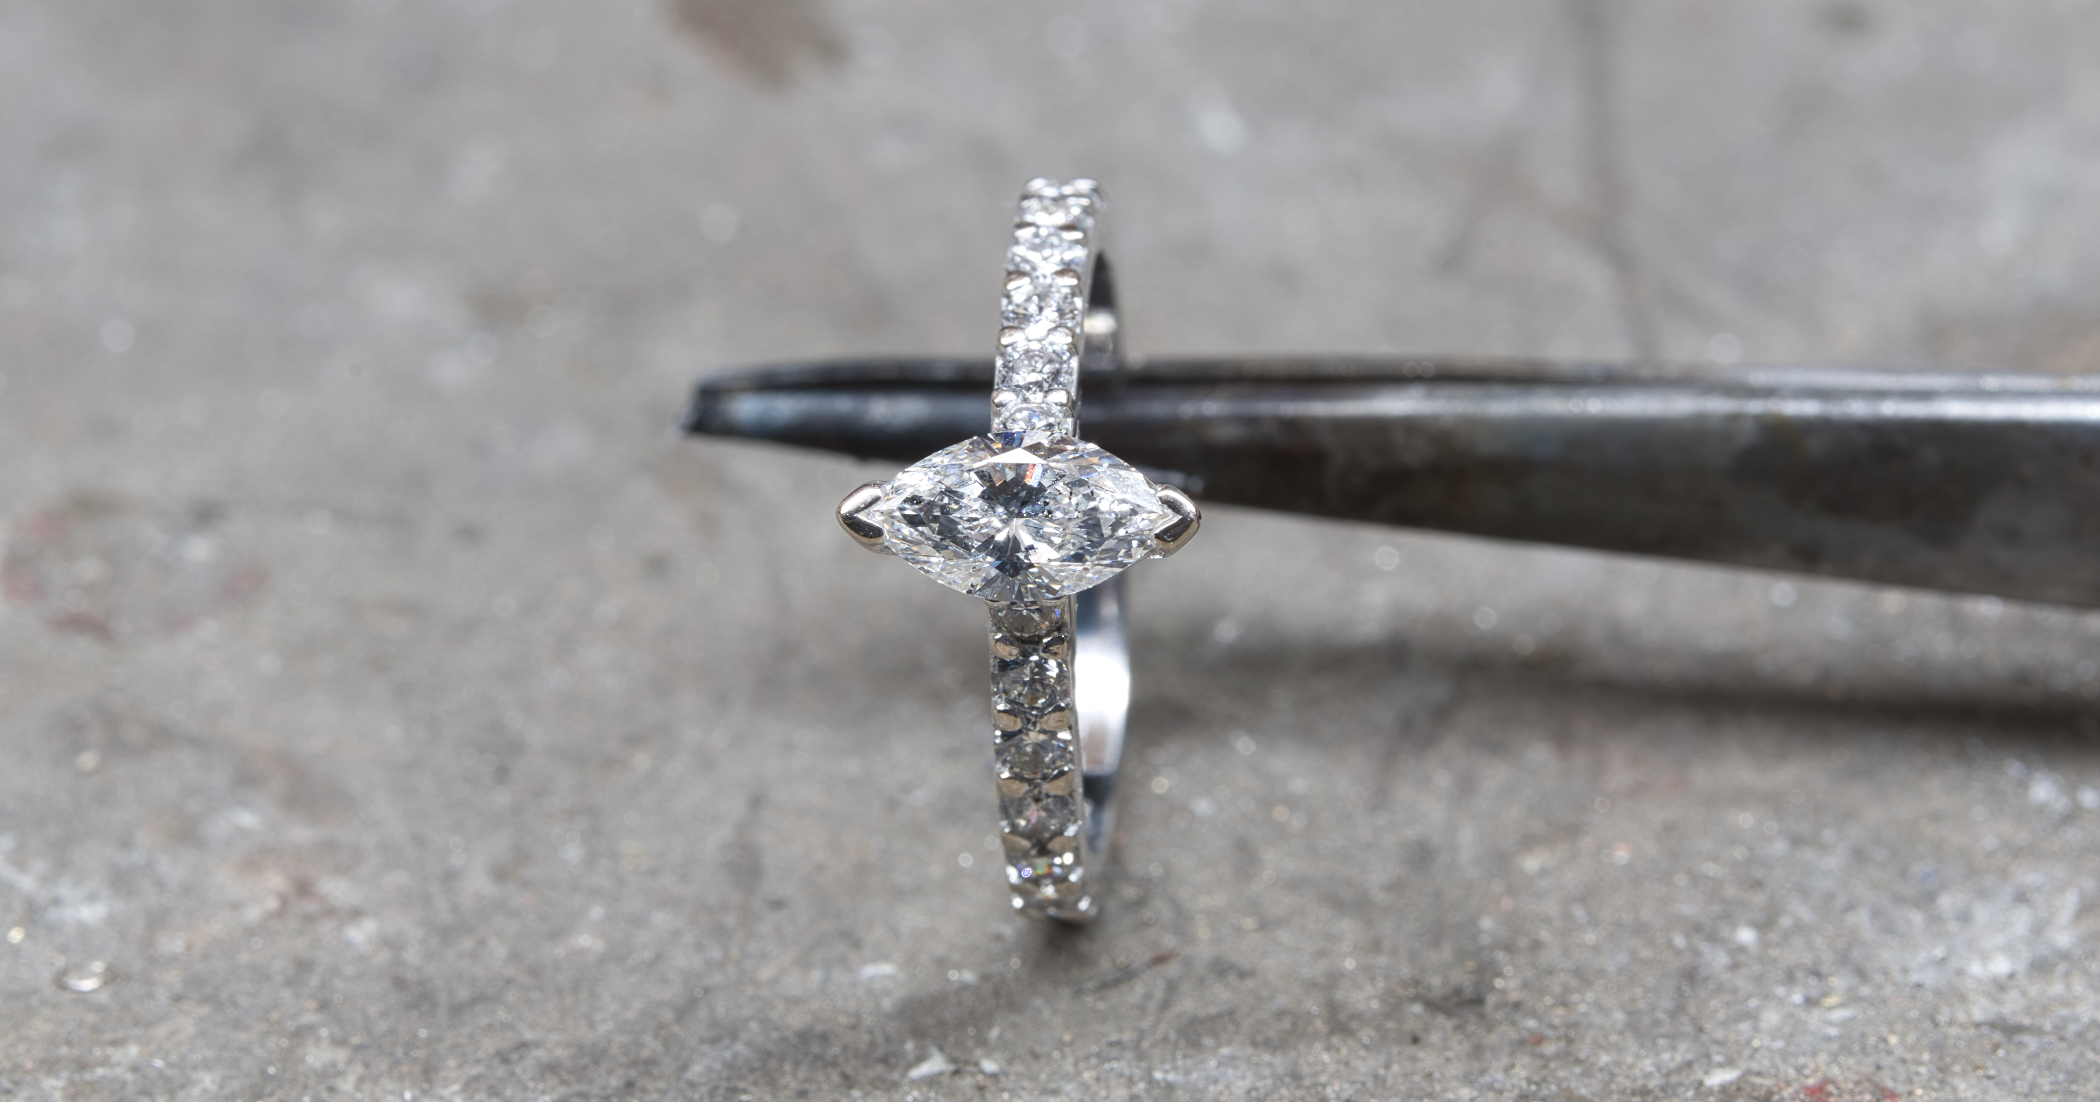 Clean diamond top and back.